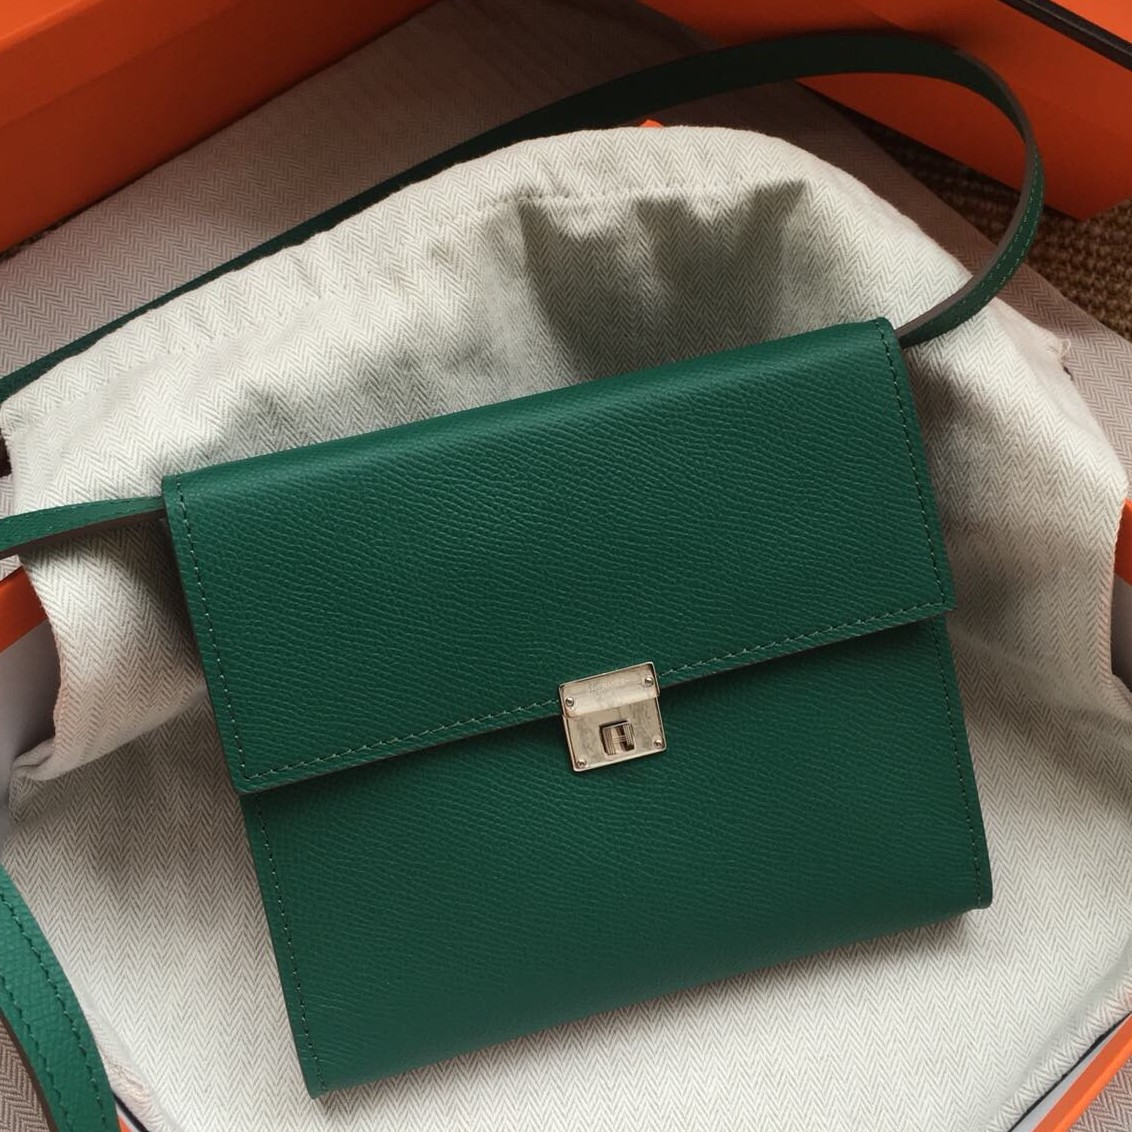 Copy Hermes Green Clic 16 Wallet With Strap